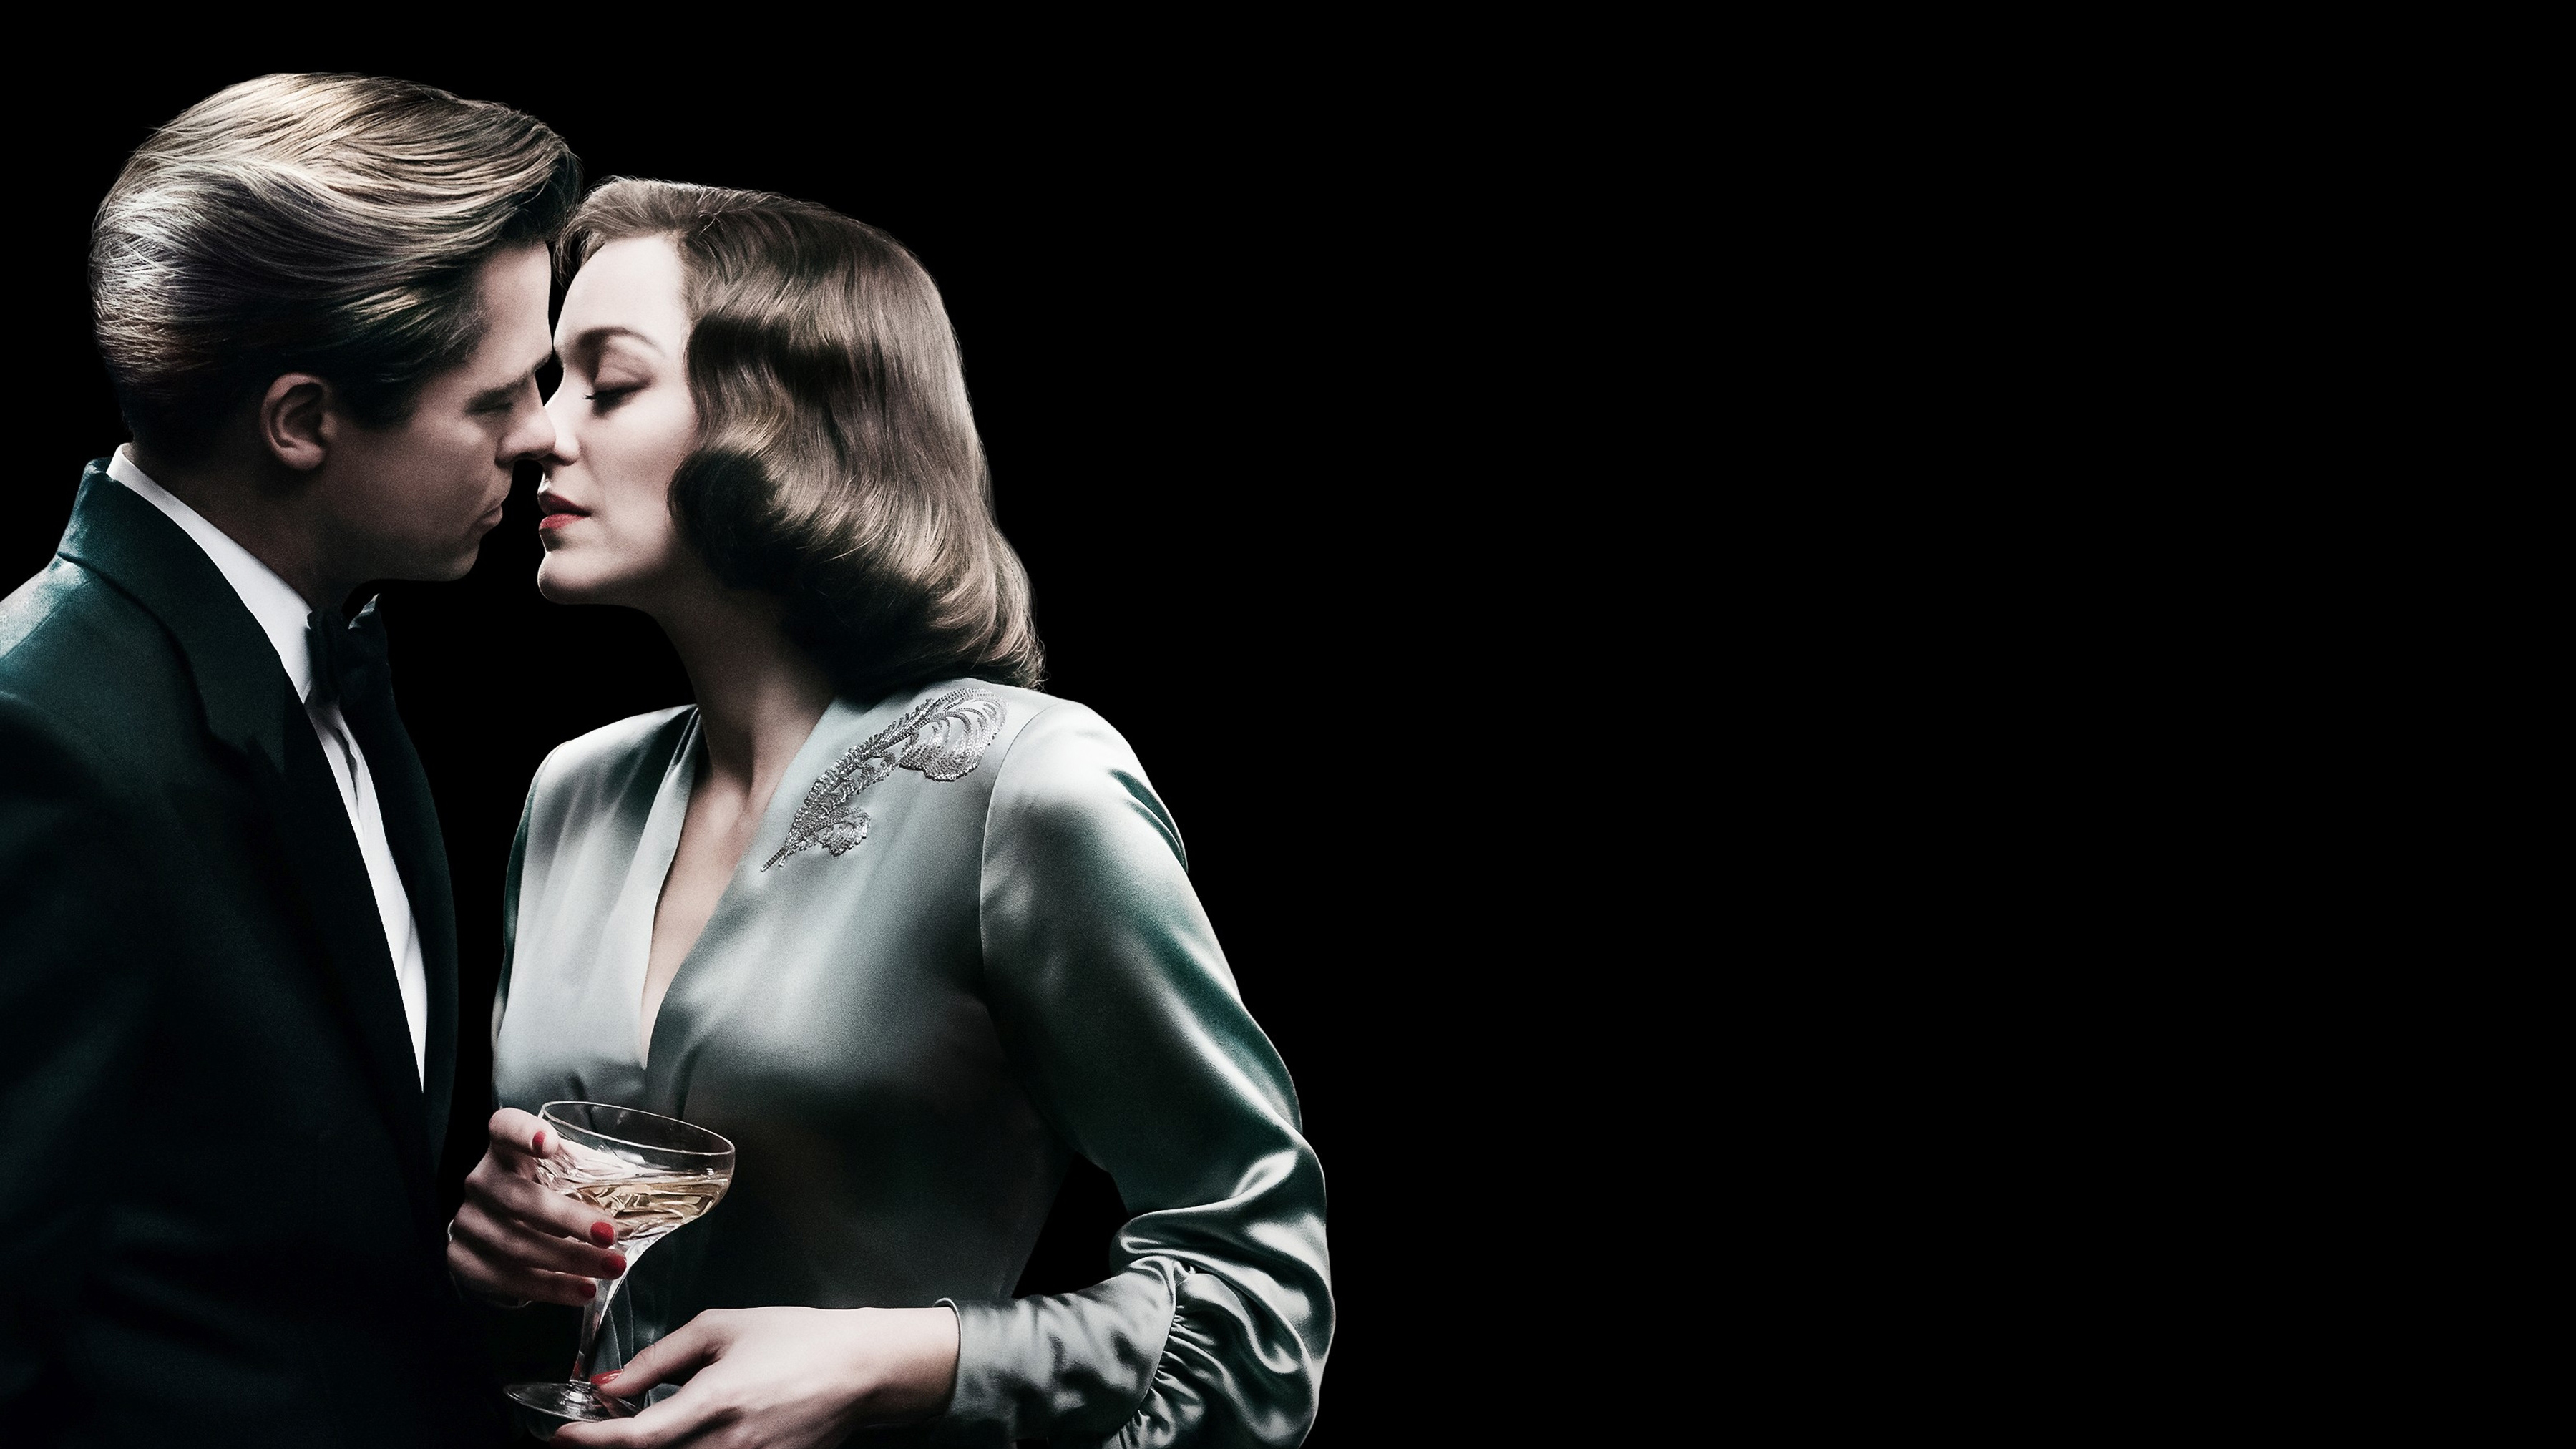 allied movie, hd movies, 4k wallpapers, images, backgrounds, photos